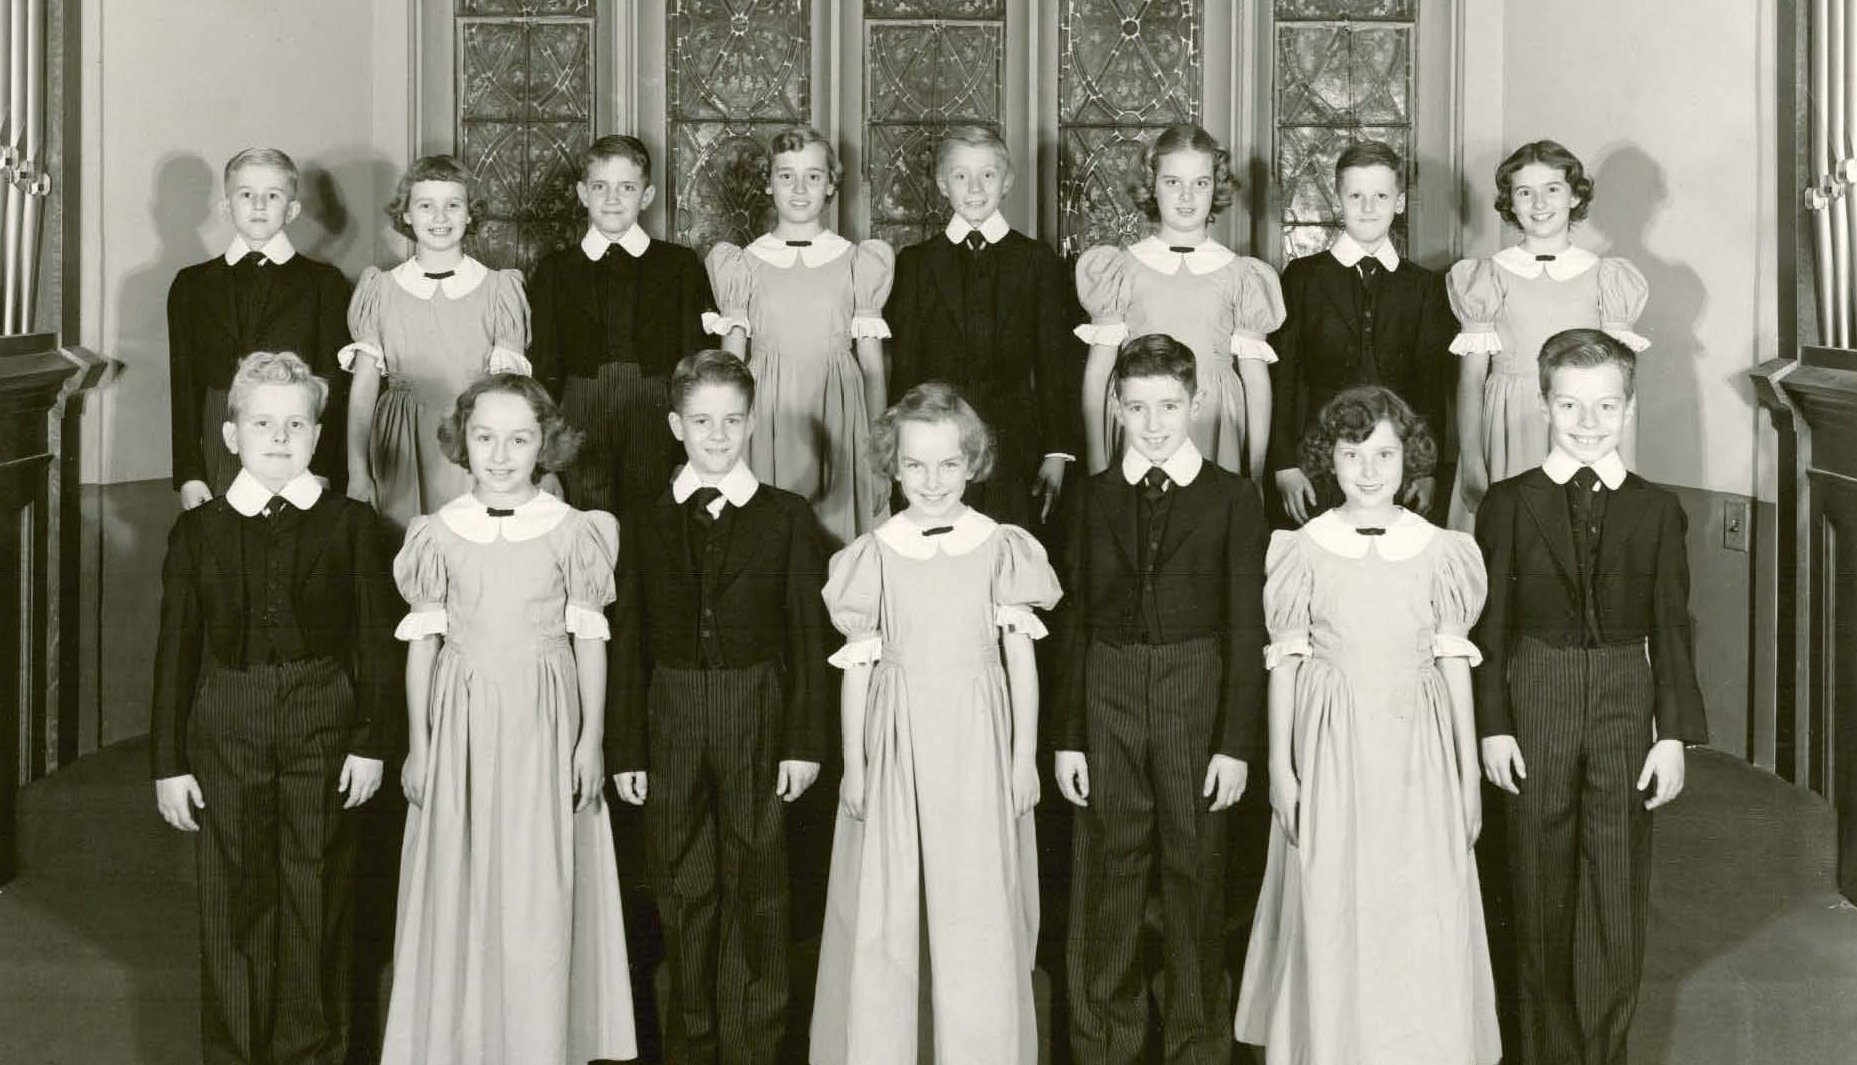 Sectional Publicity Photo (1954) and Musical Selection